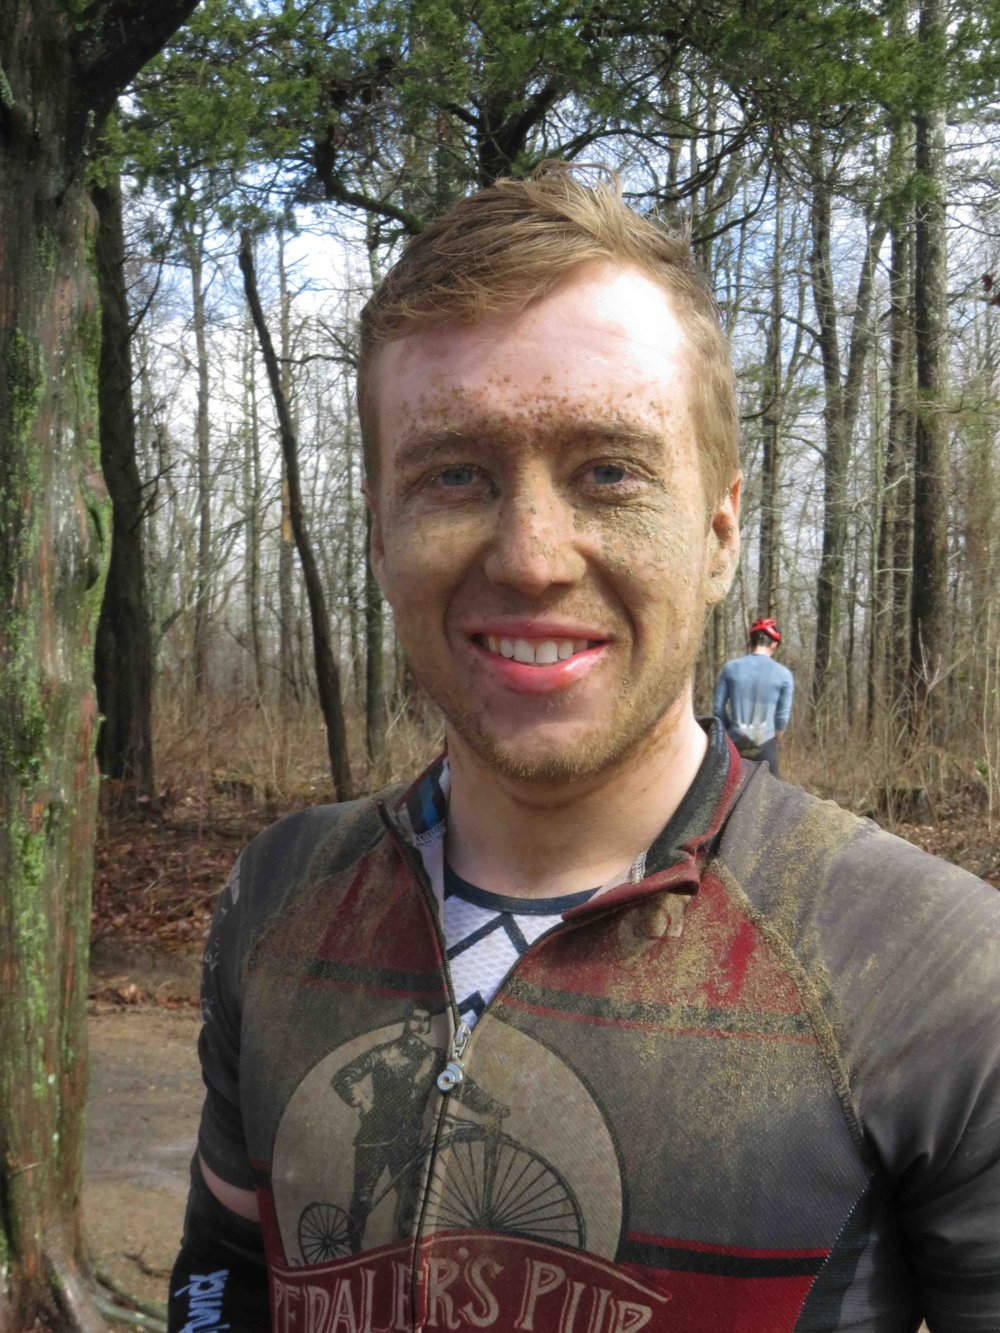 August Bailey of Bentonville took a little mud in the face Feb. 23. (Special to the Democrat-Gazette/NANCY RANEY)